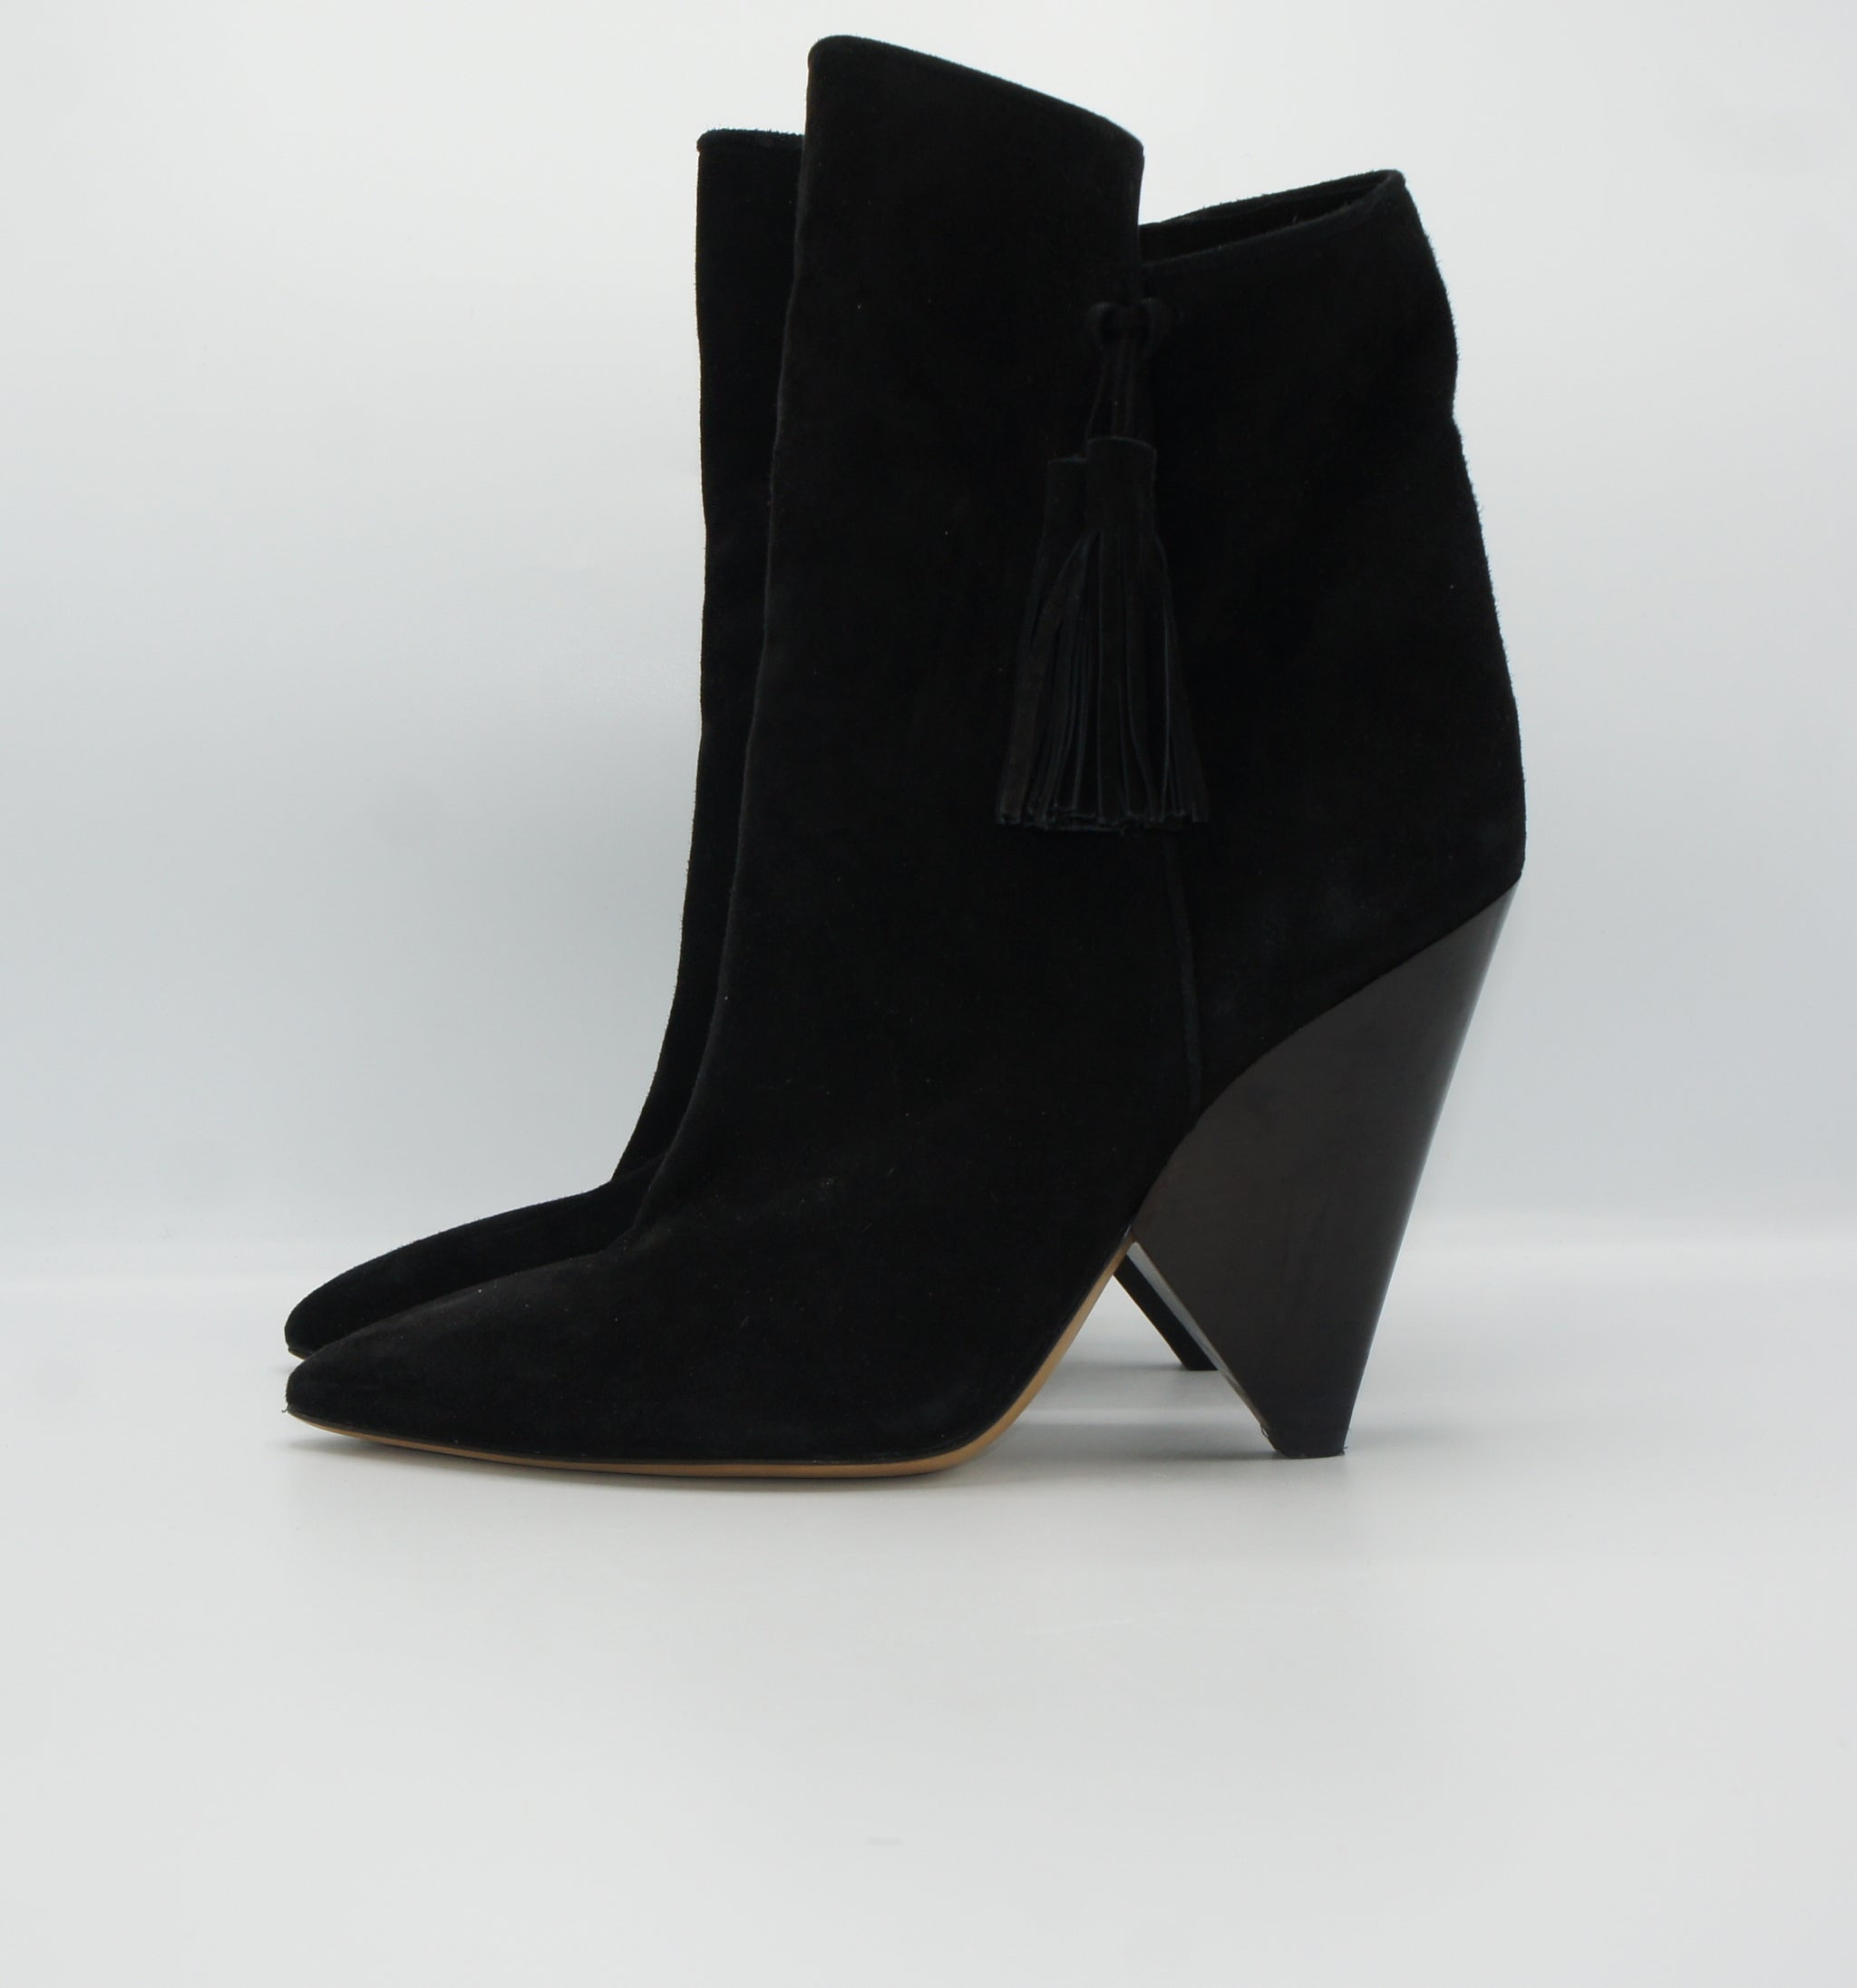 Isabel Marant Boots, 40 - Iconics Preloved Luxury